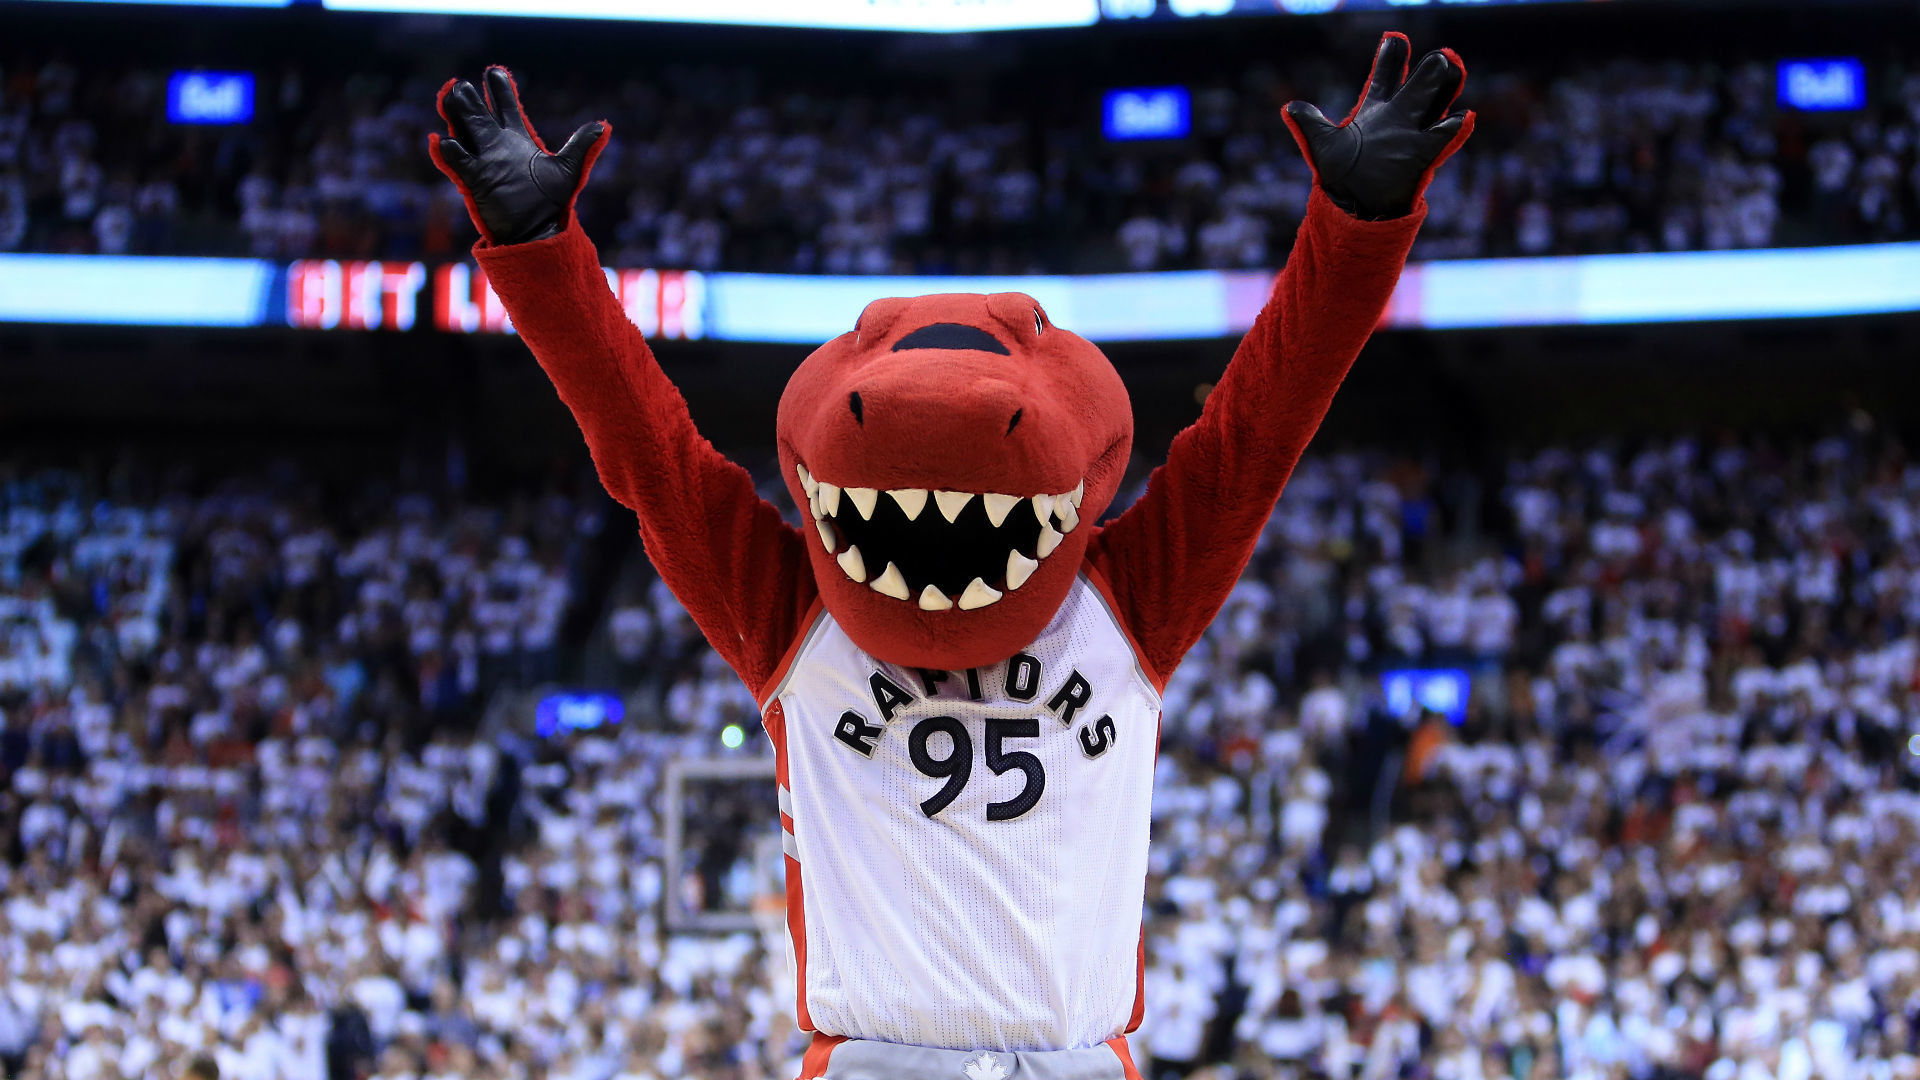 … contestant loses everything on NBA mascot clue, and that's just fine  … nba mascot raptors toronto …